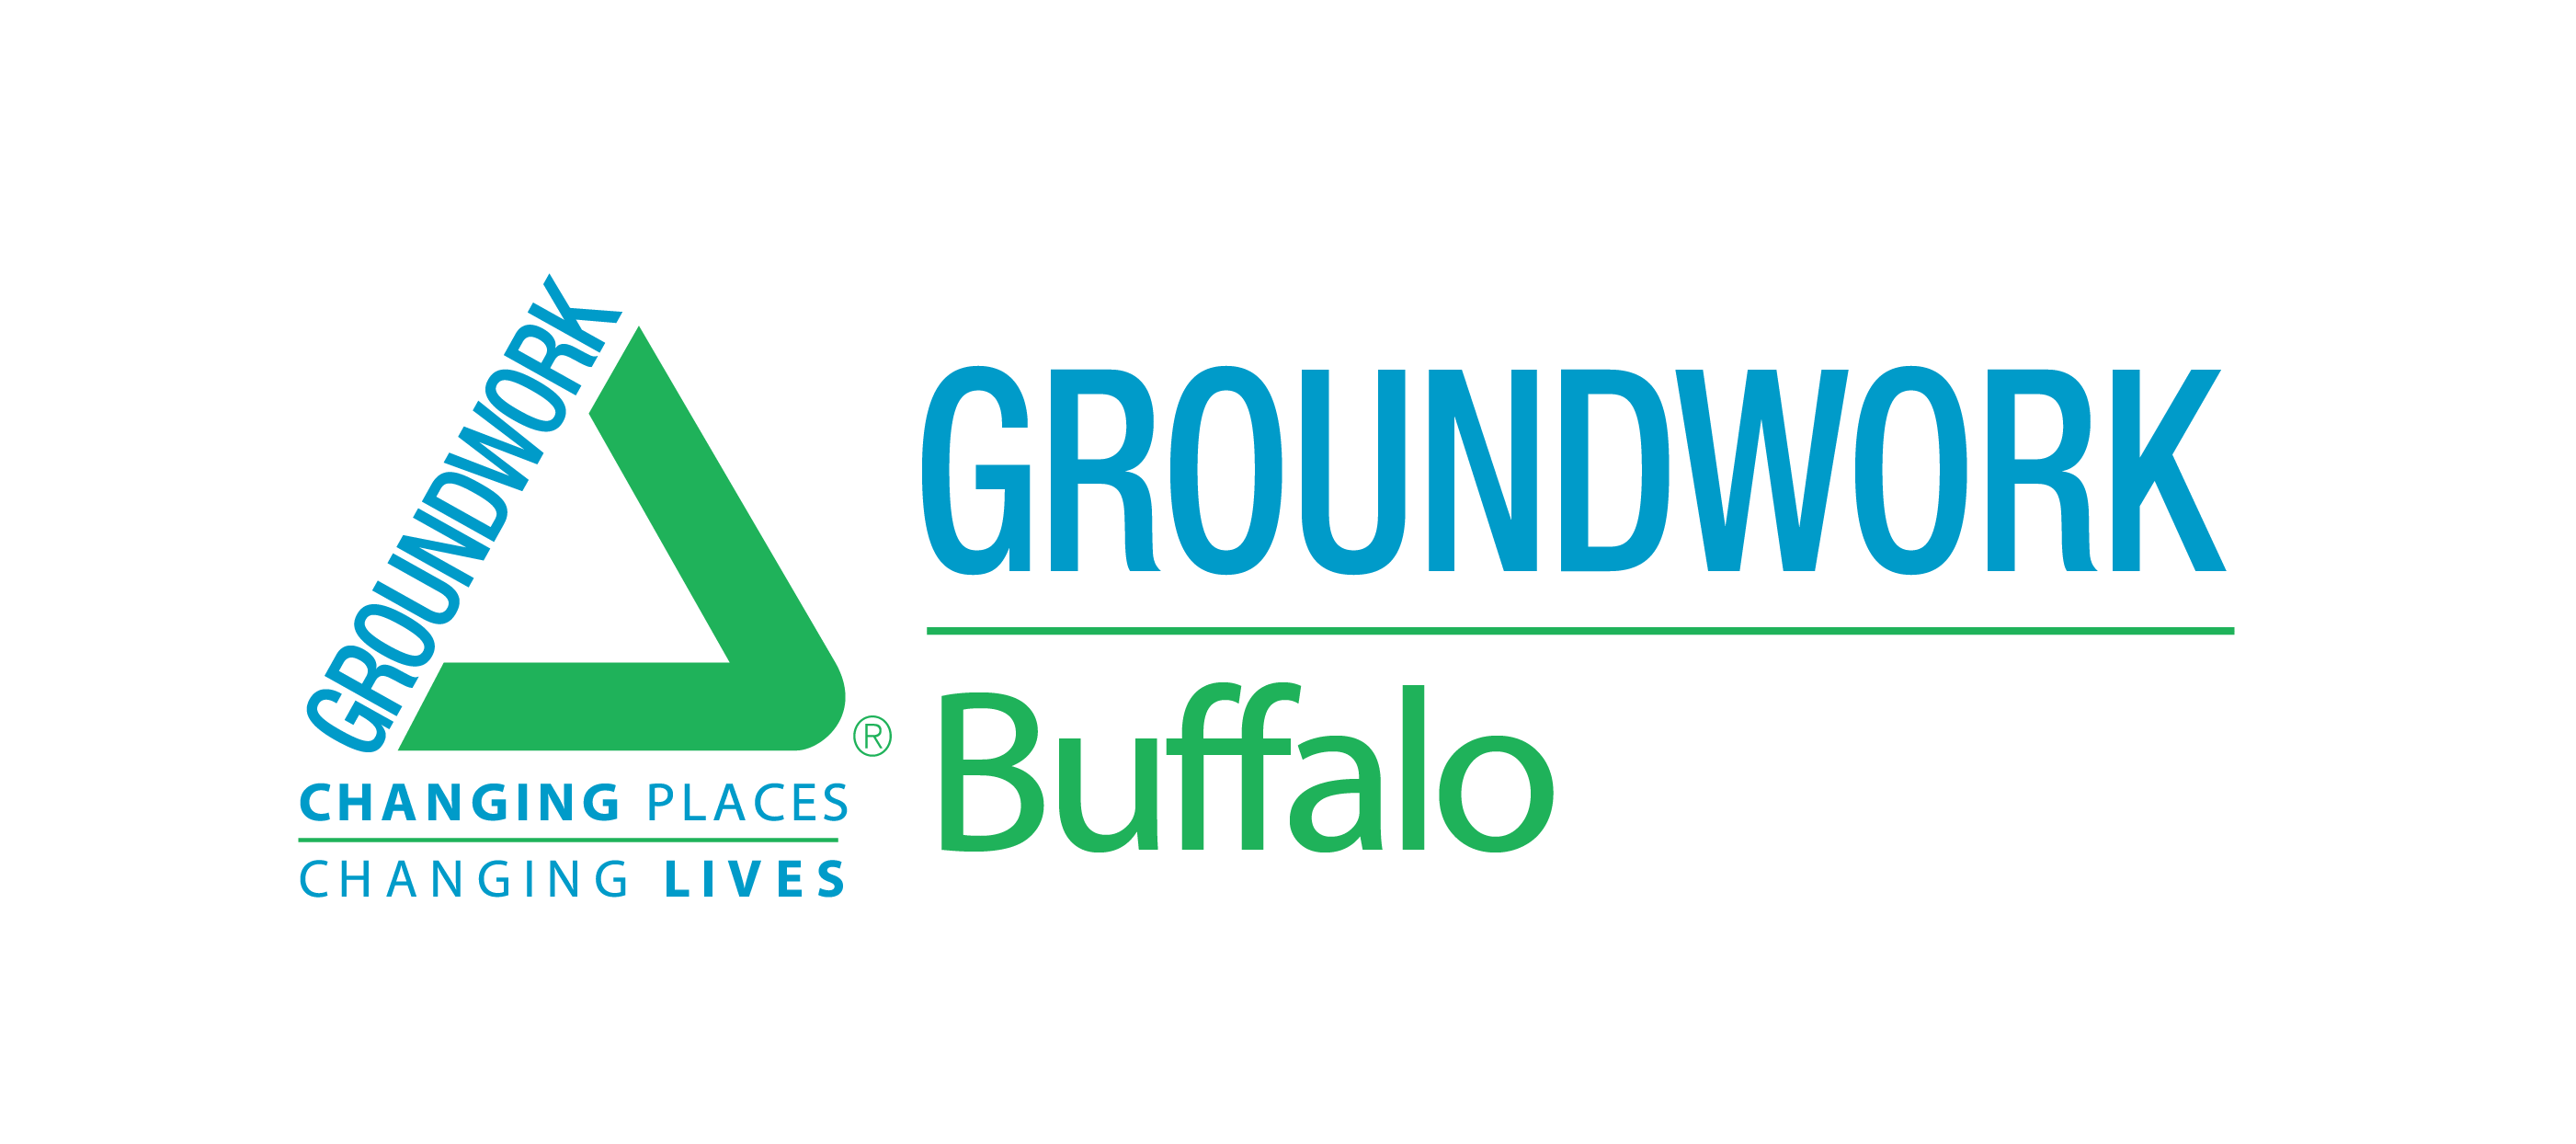 Groundwork Buffalo